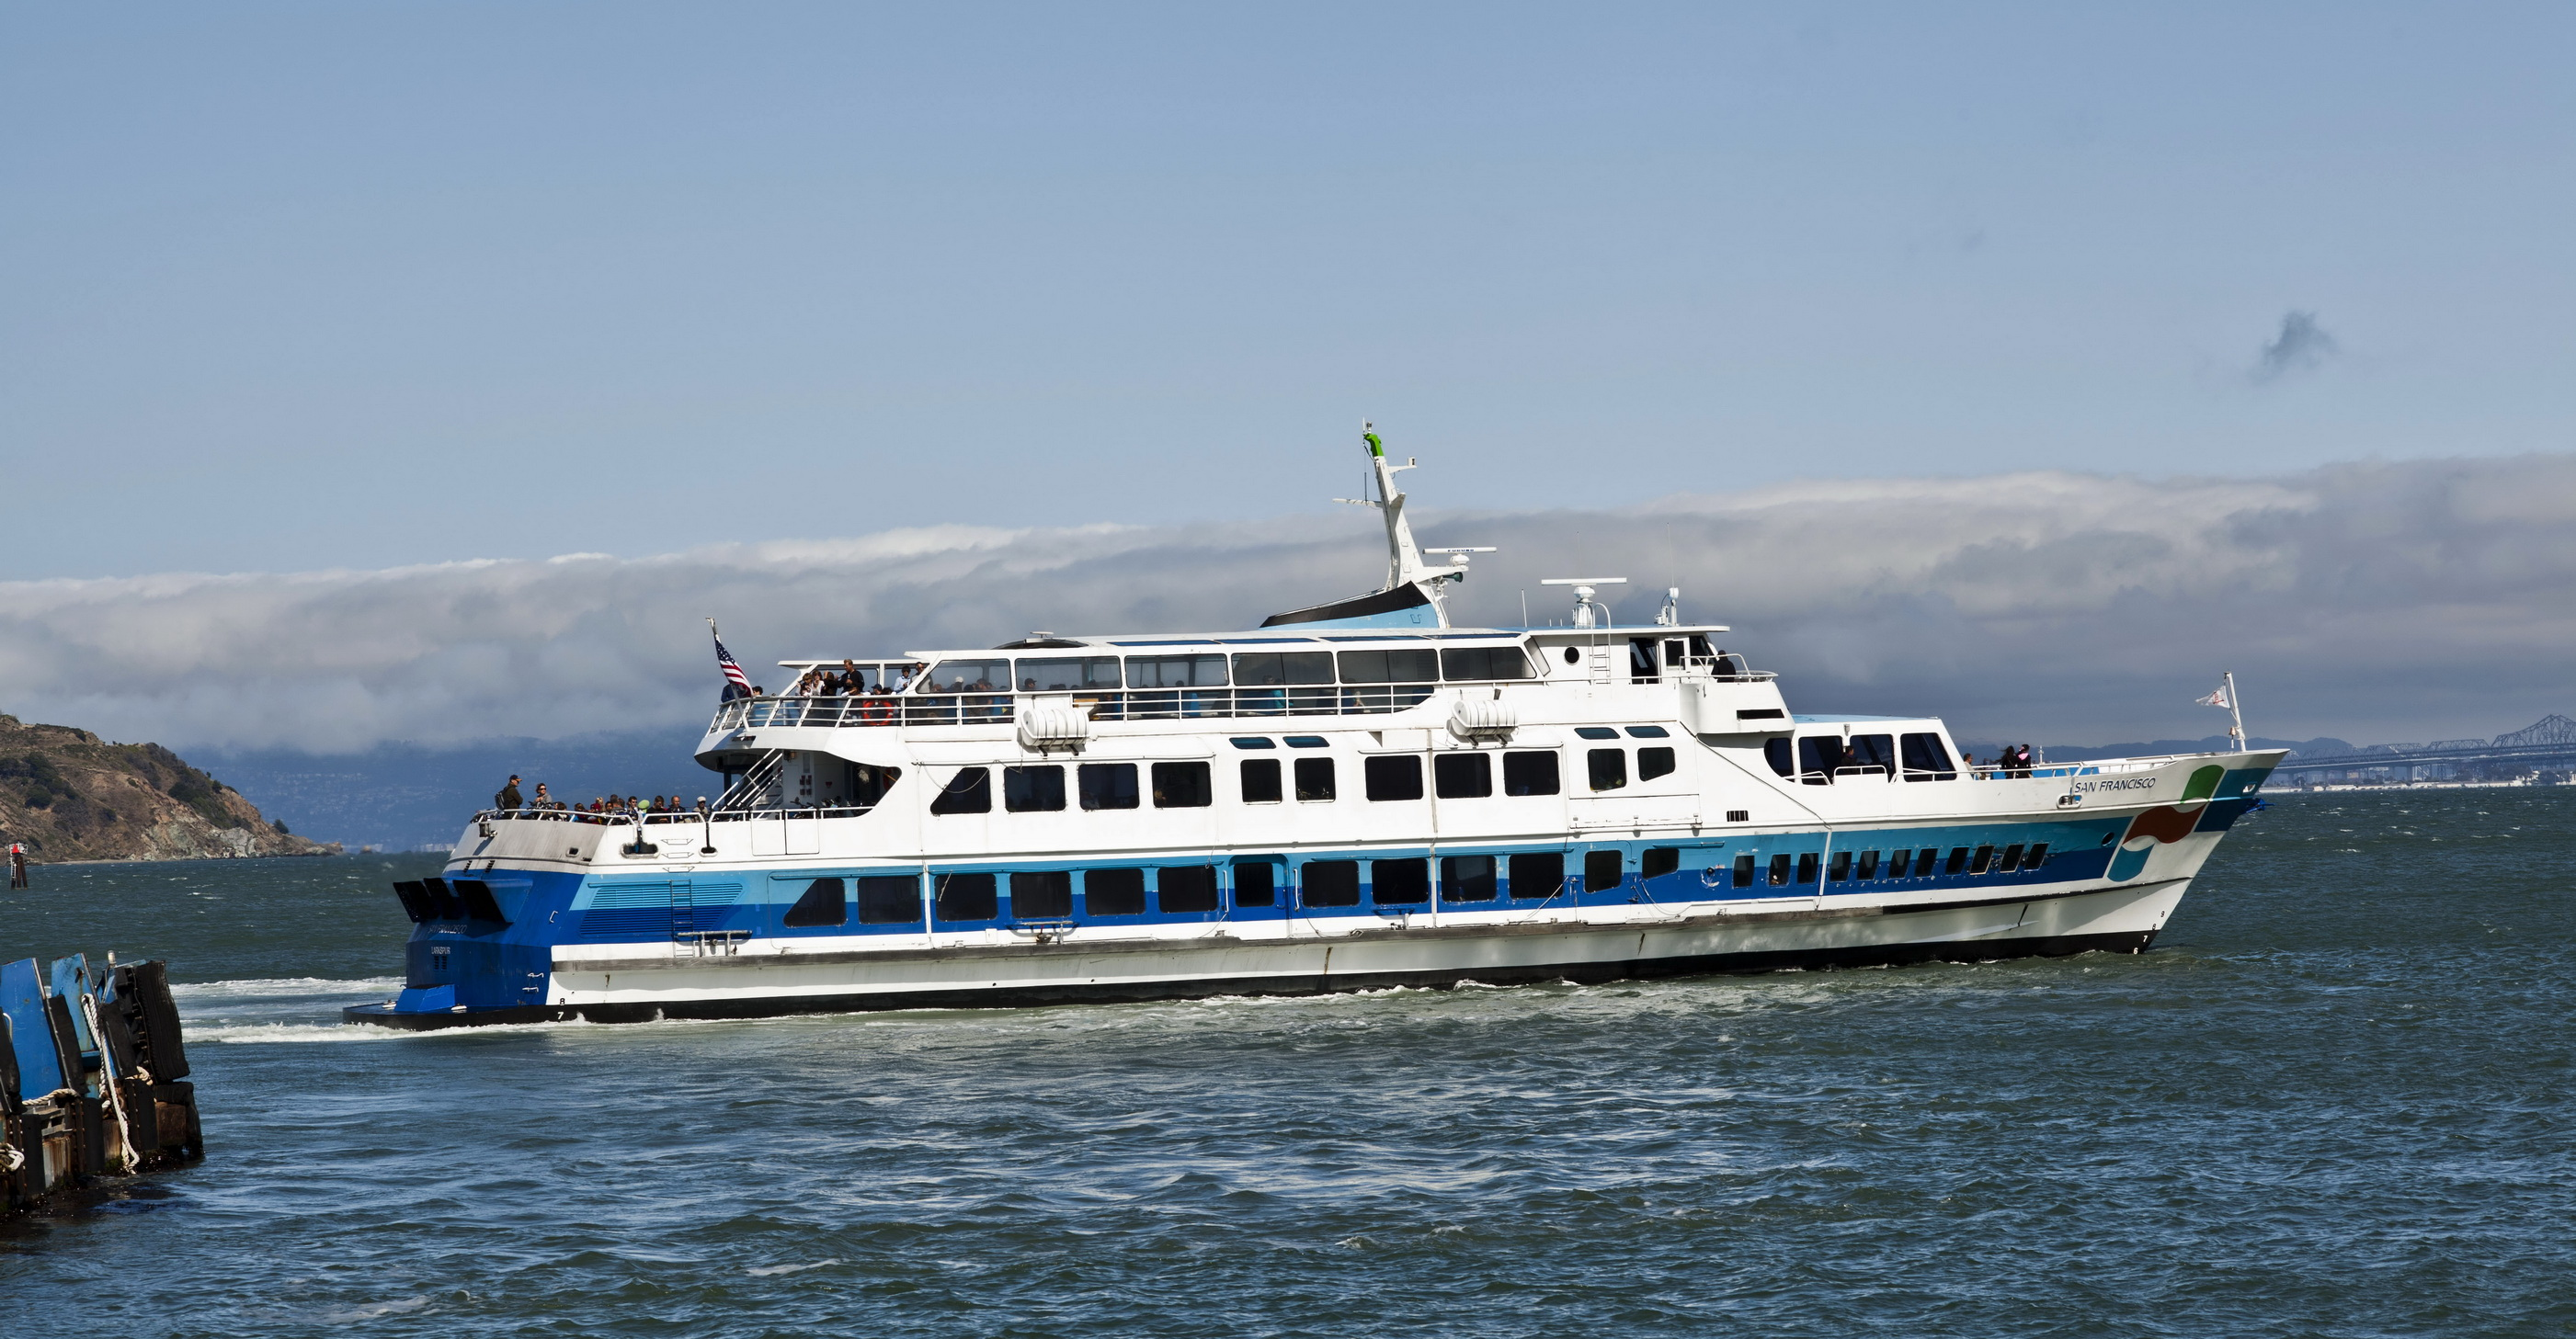 e with Sausalito Jetty Richardson Bay Ferry Mv San Francisco California July 2011 03 on 274526 together with Mozambique Channel Africa as well Peixes Traira also Surf additionally Fulani Girl Nigeria 433794196.